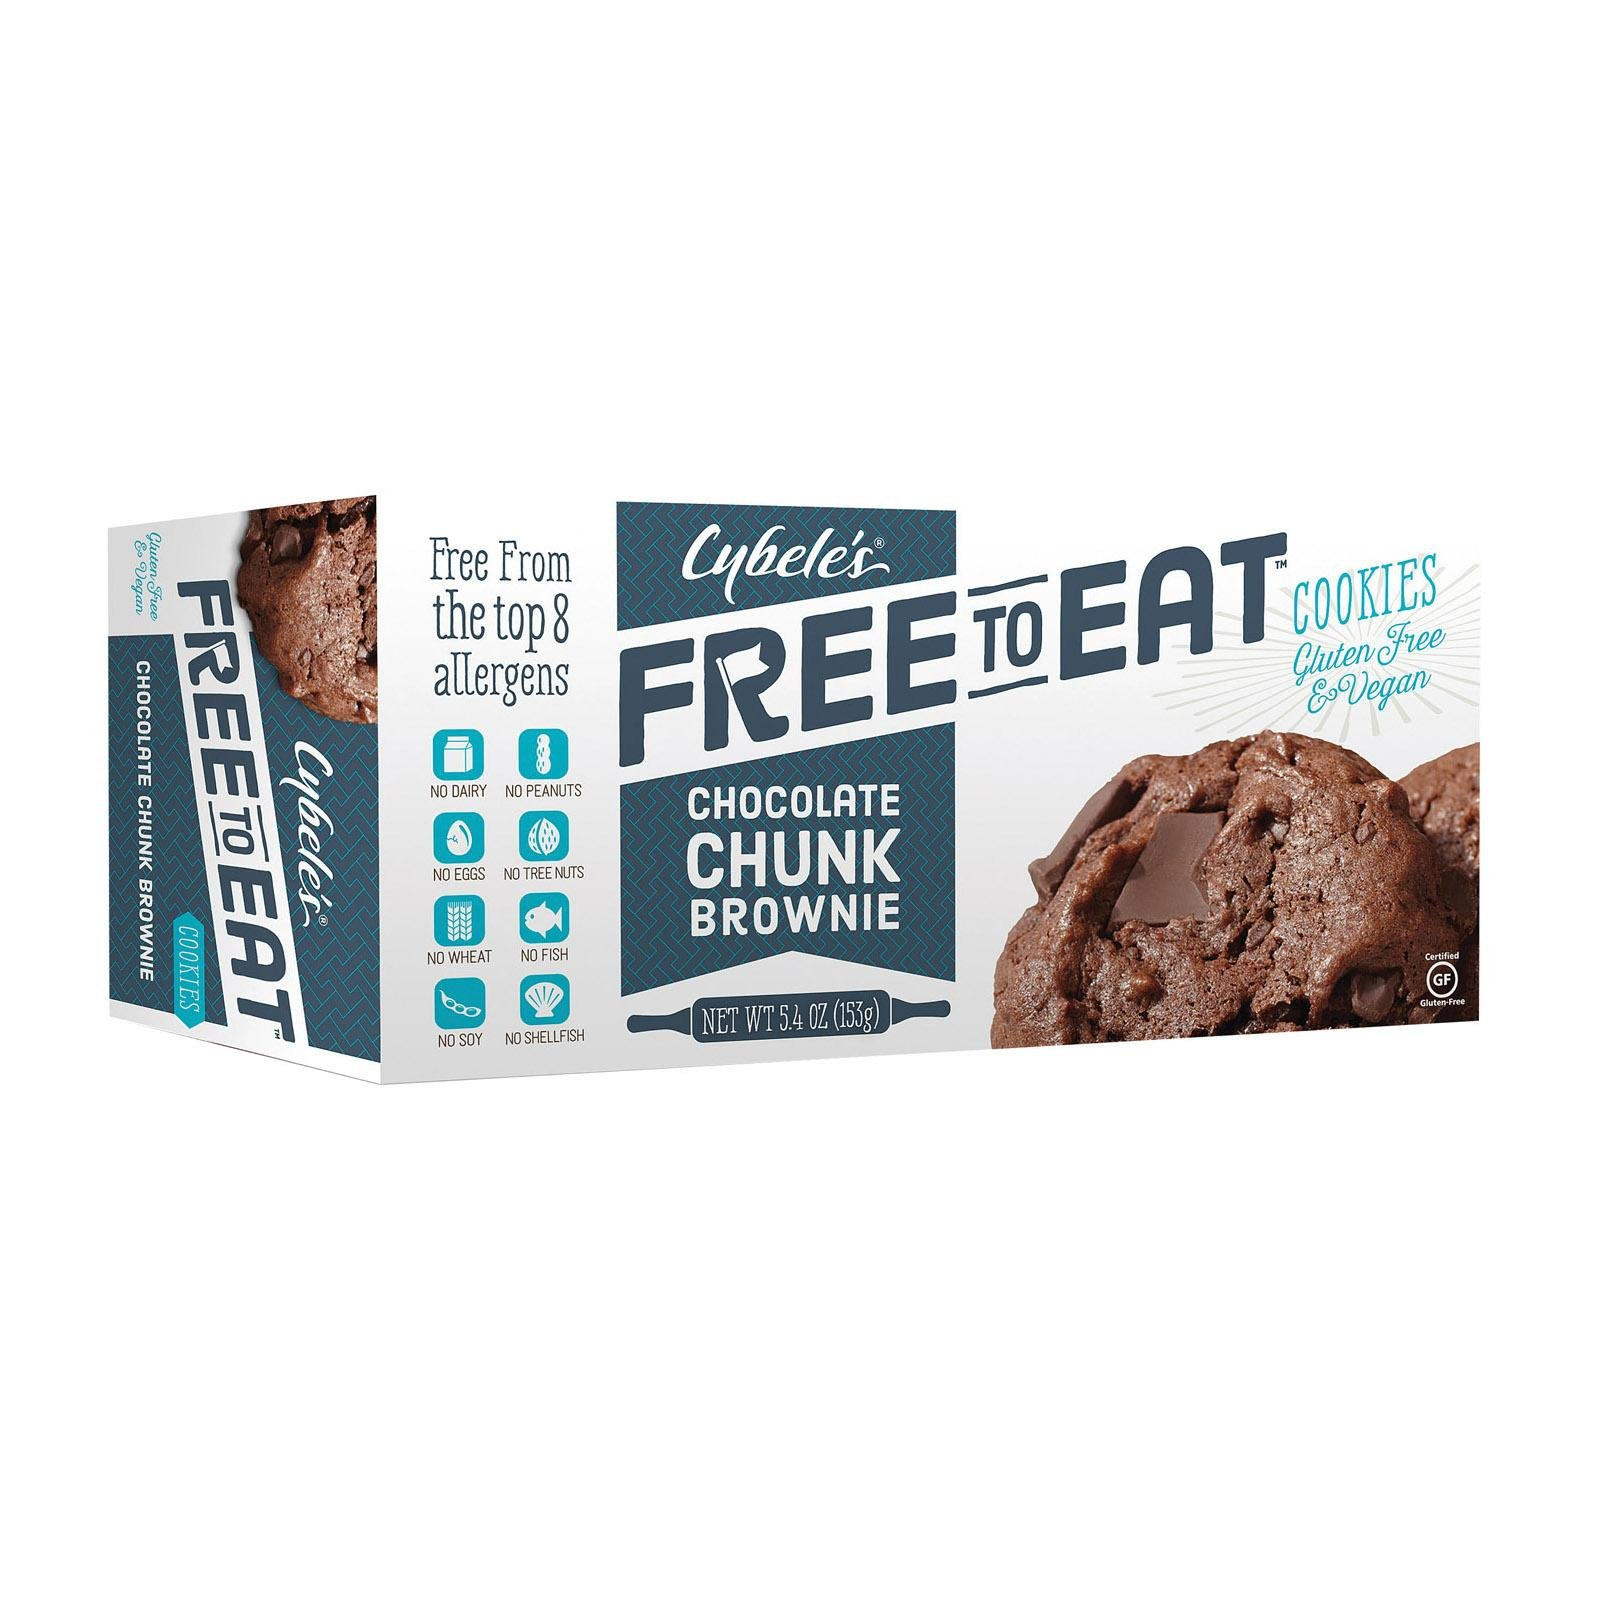 Cybele'S Free To Eat Chocolate Chunk Brownie Cookies (Pack of 6)